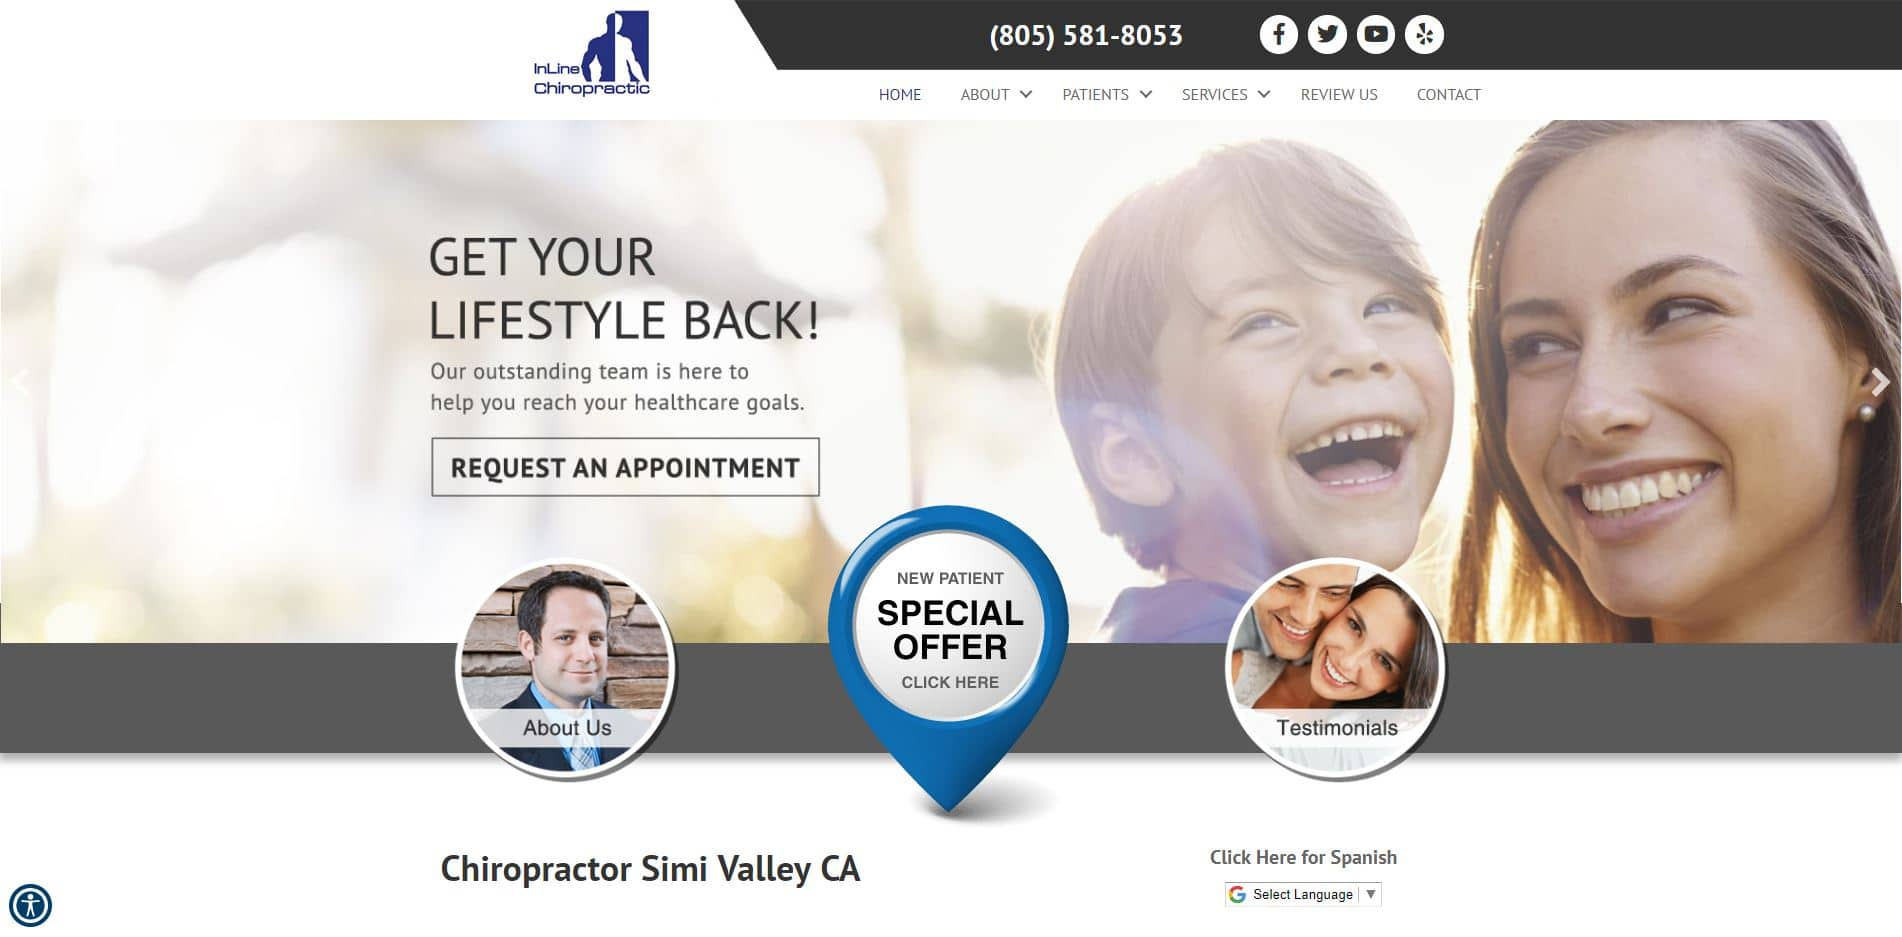 Chiropractor in Simi Valley